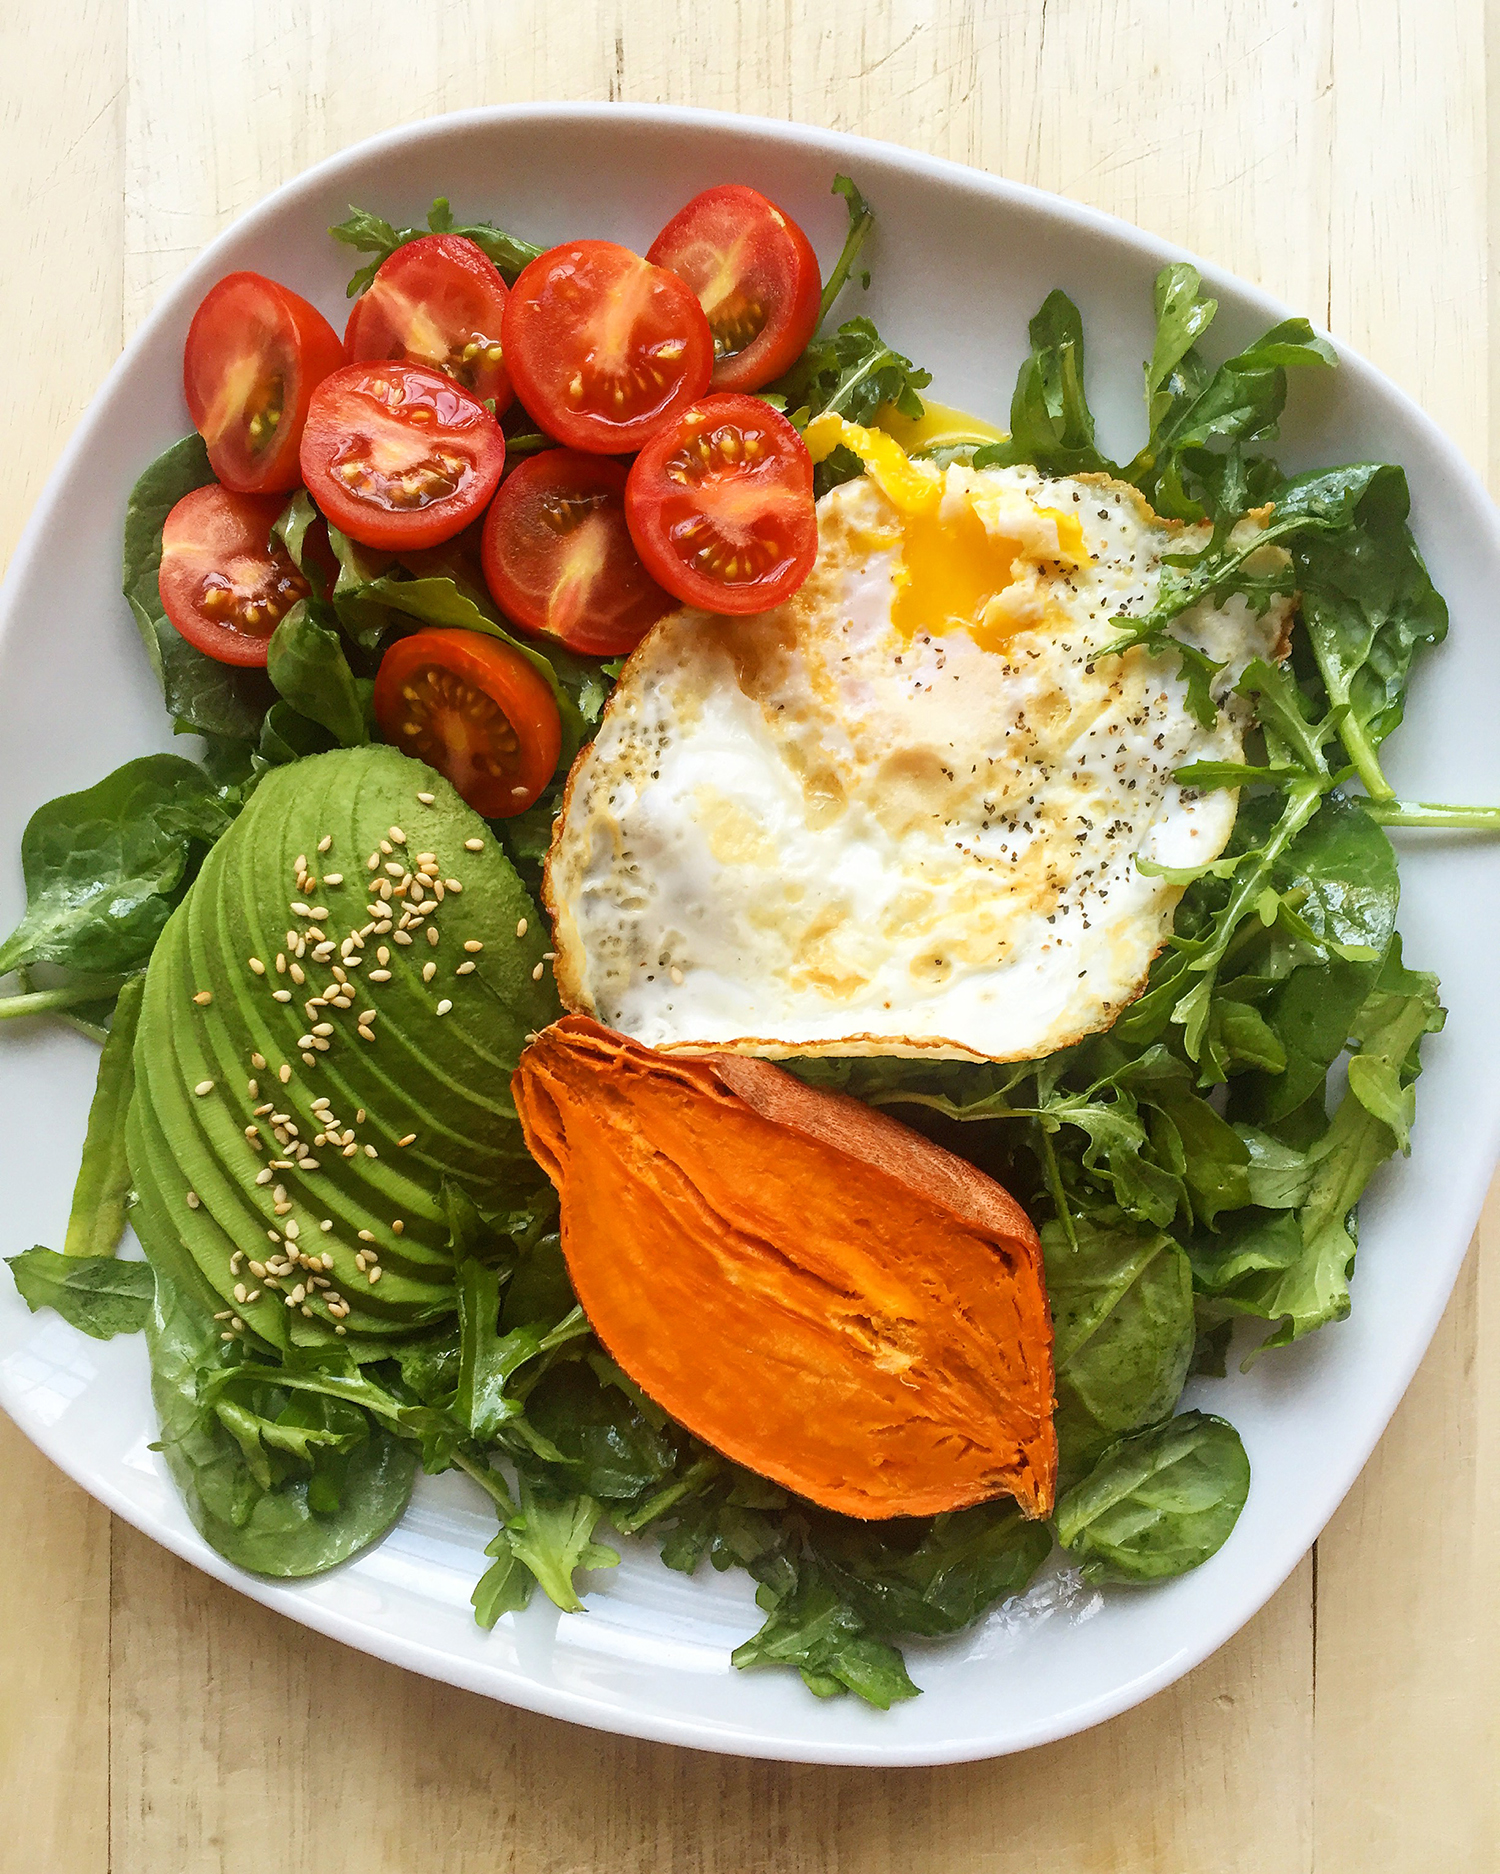 Some tips on what to keep on hand to make easy breakfasts, meat-free options too! Click to read more...